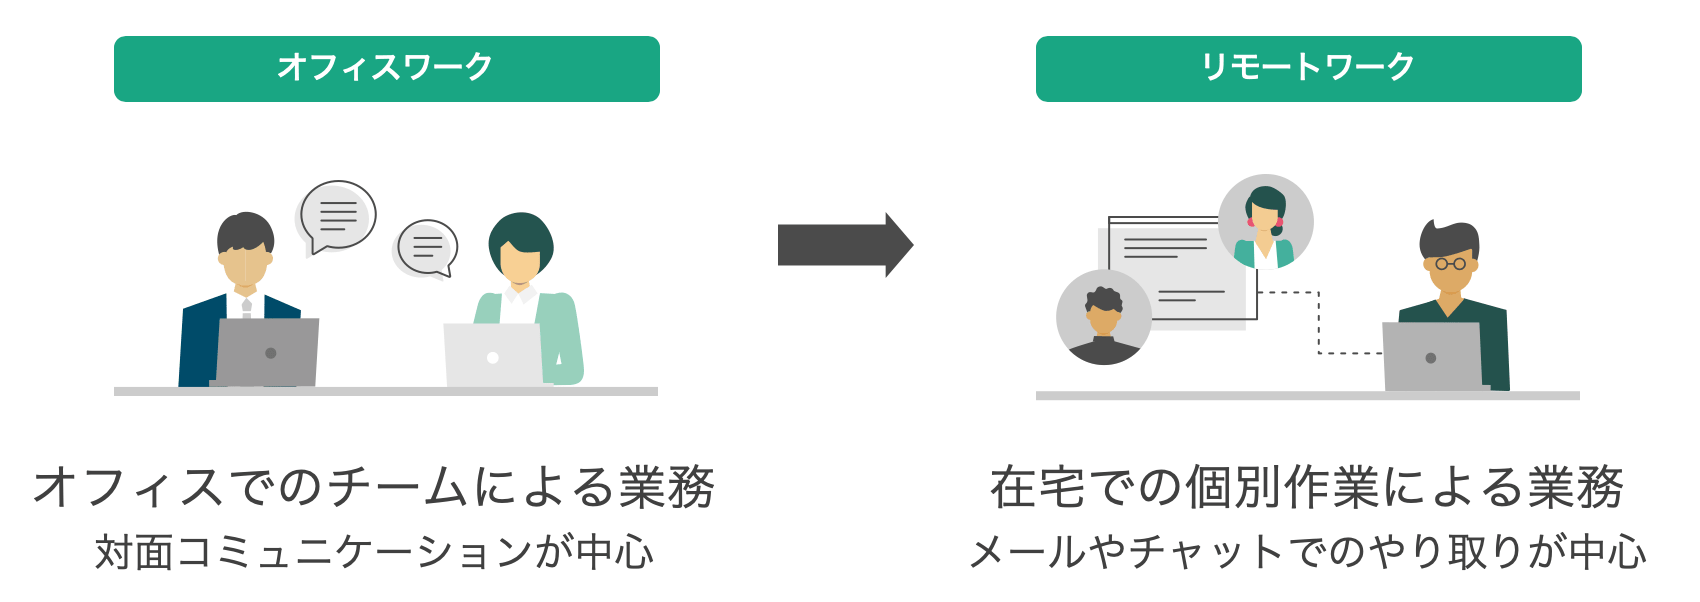 difference-of-workstyle